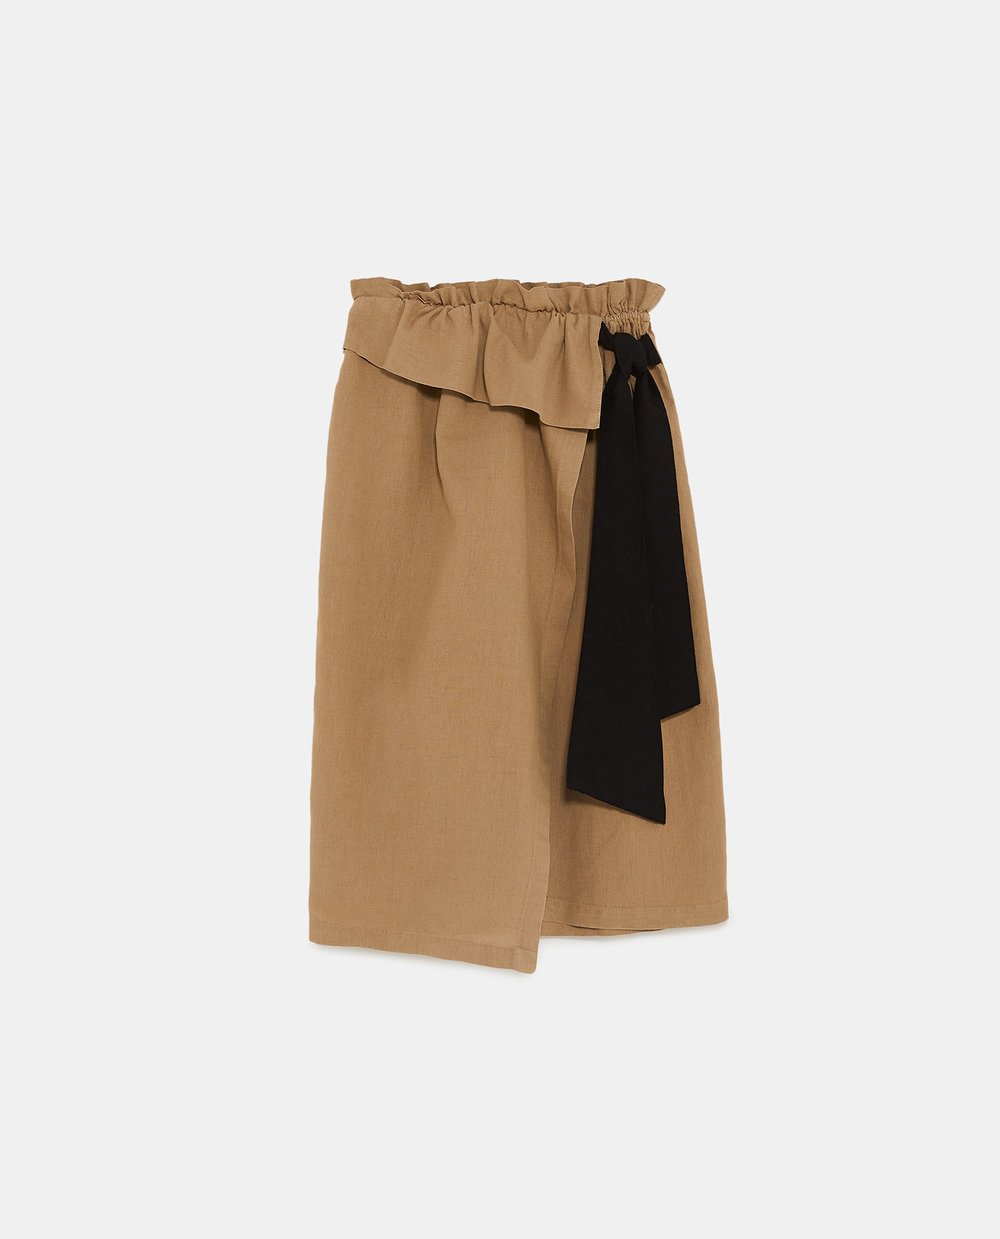 https://www.zara.com/ca/en/skirt-with-contrasting-bow-p02633496.html?v1=5990555&v2=719016